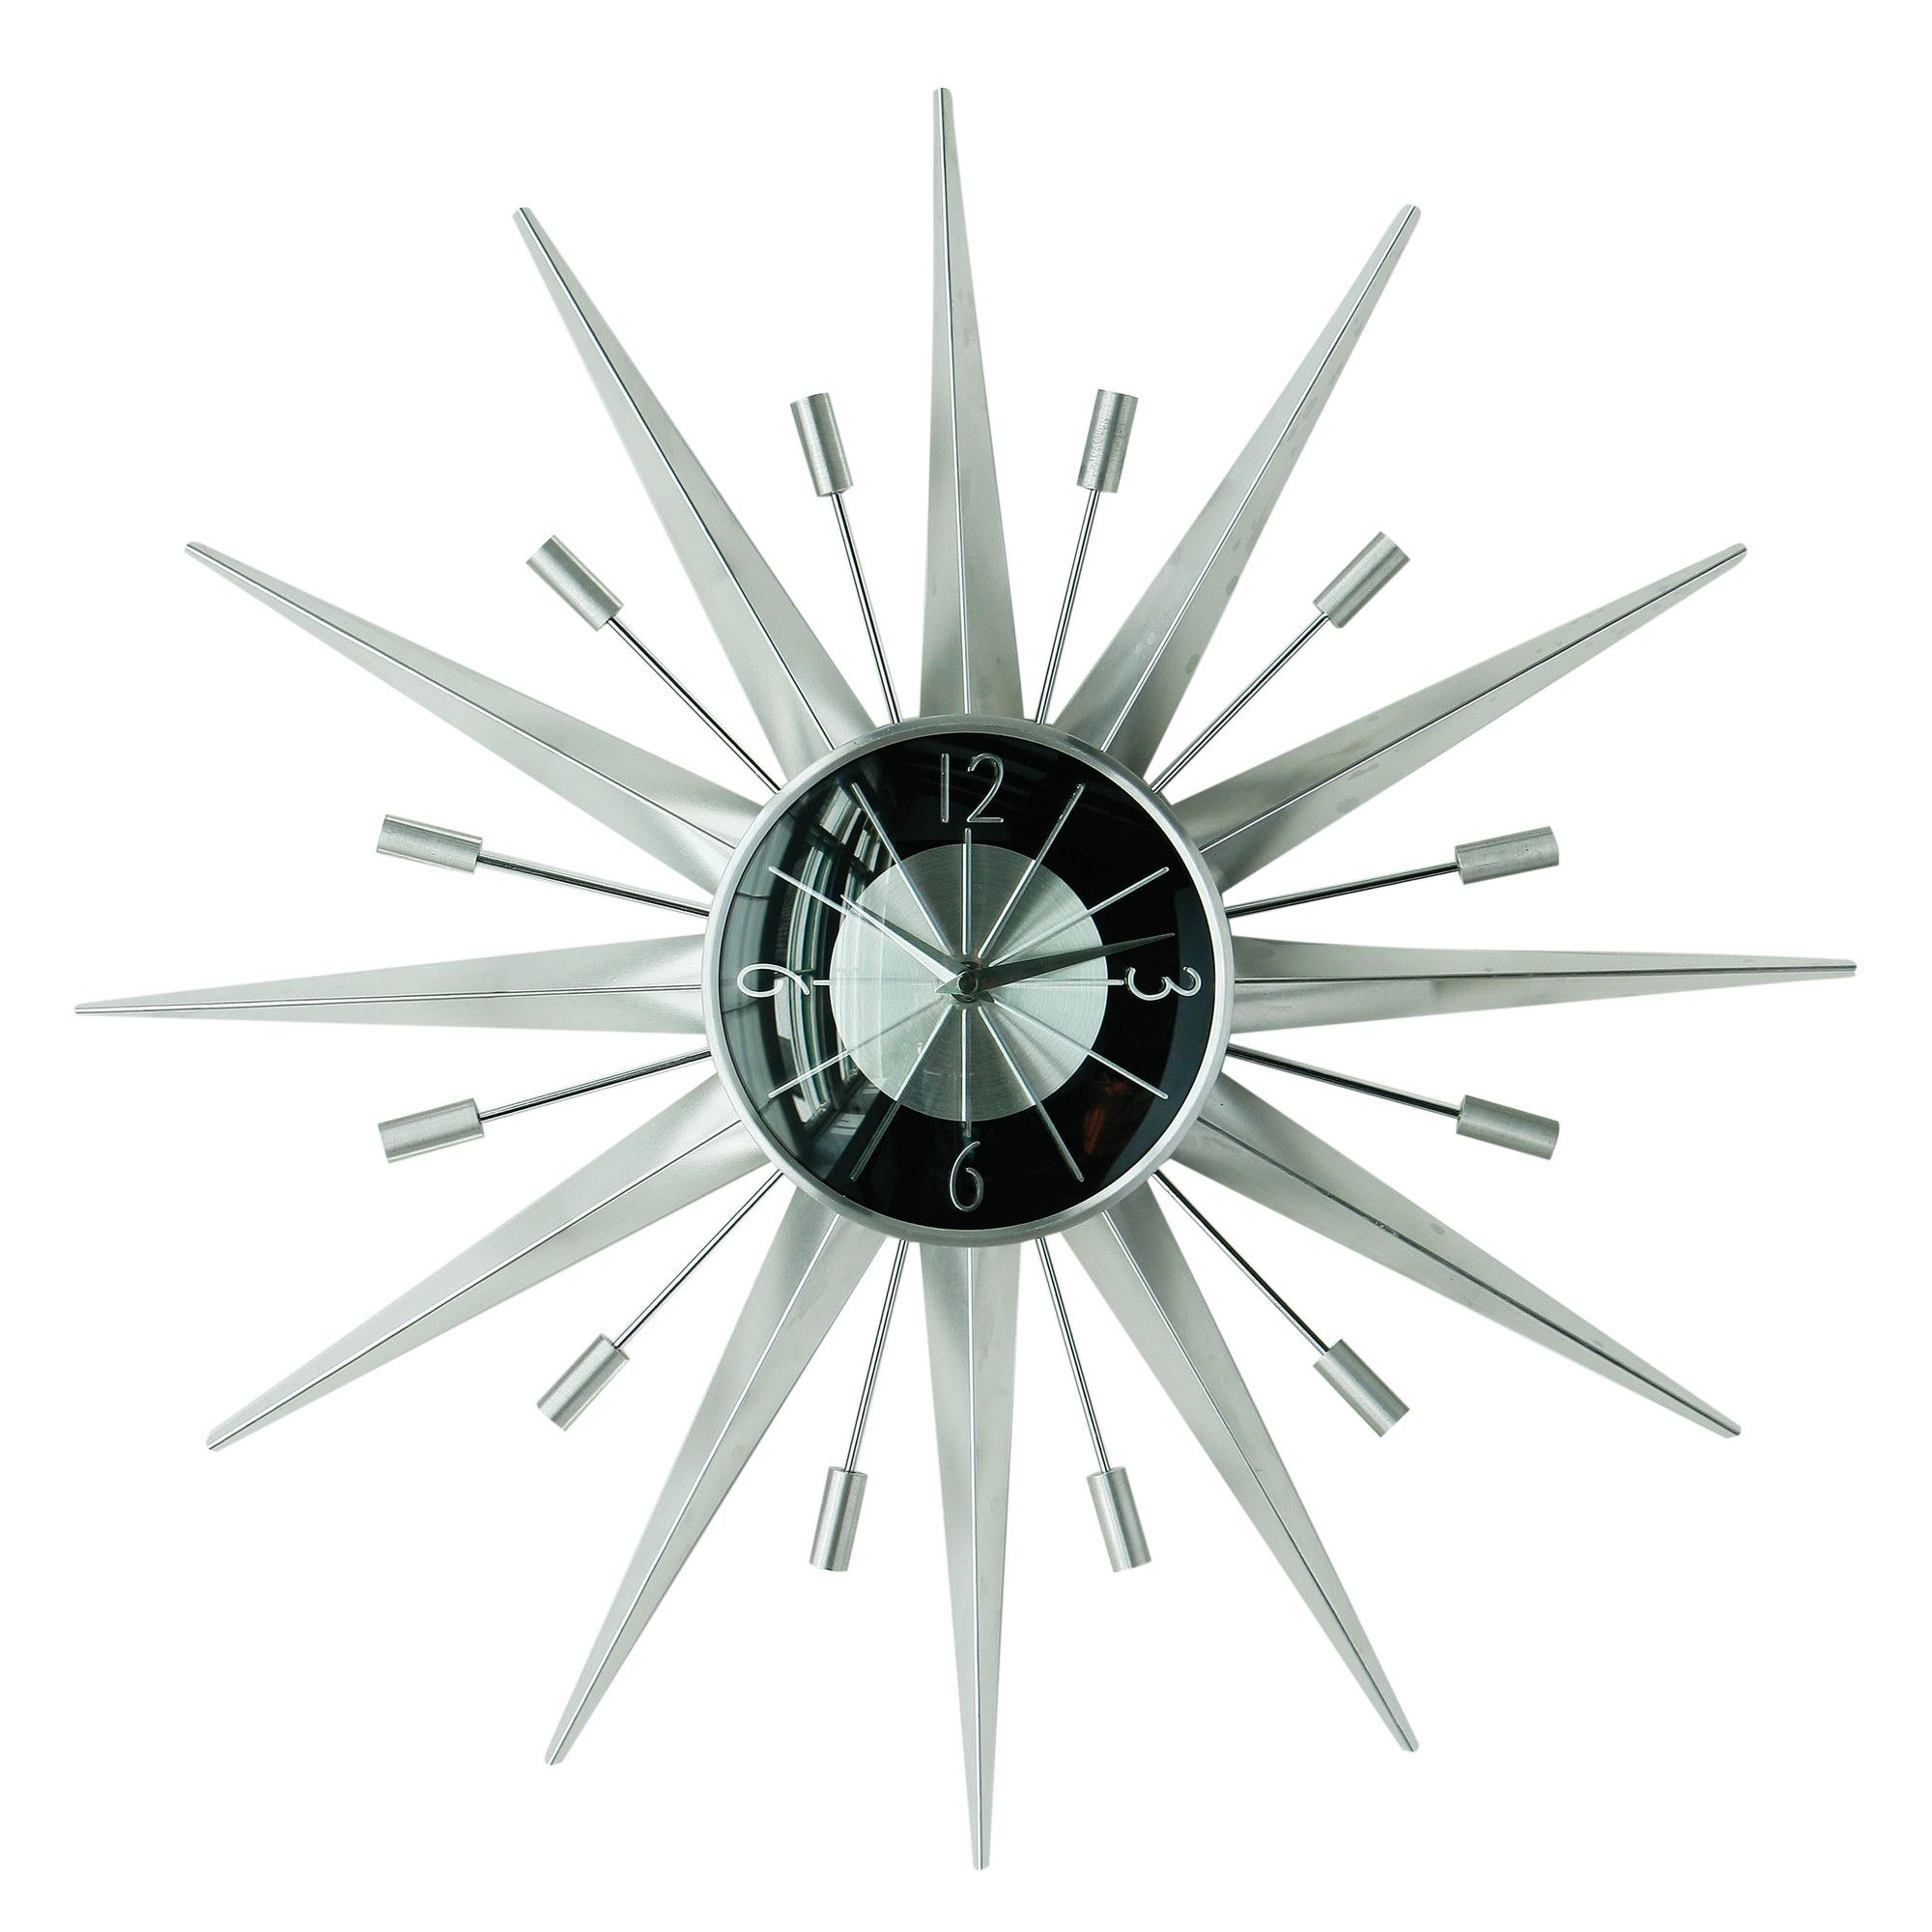 Premier housewares sunspoke wall clock wayfair uk wall clock buy premier housewares sunspoke wall clock from our clocks range at tesco direct amipublicfo Image collections